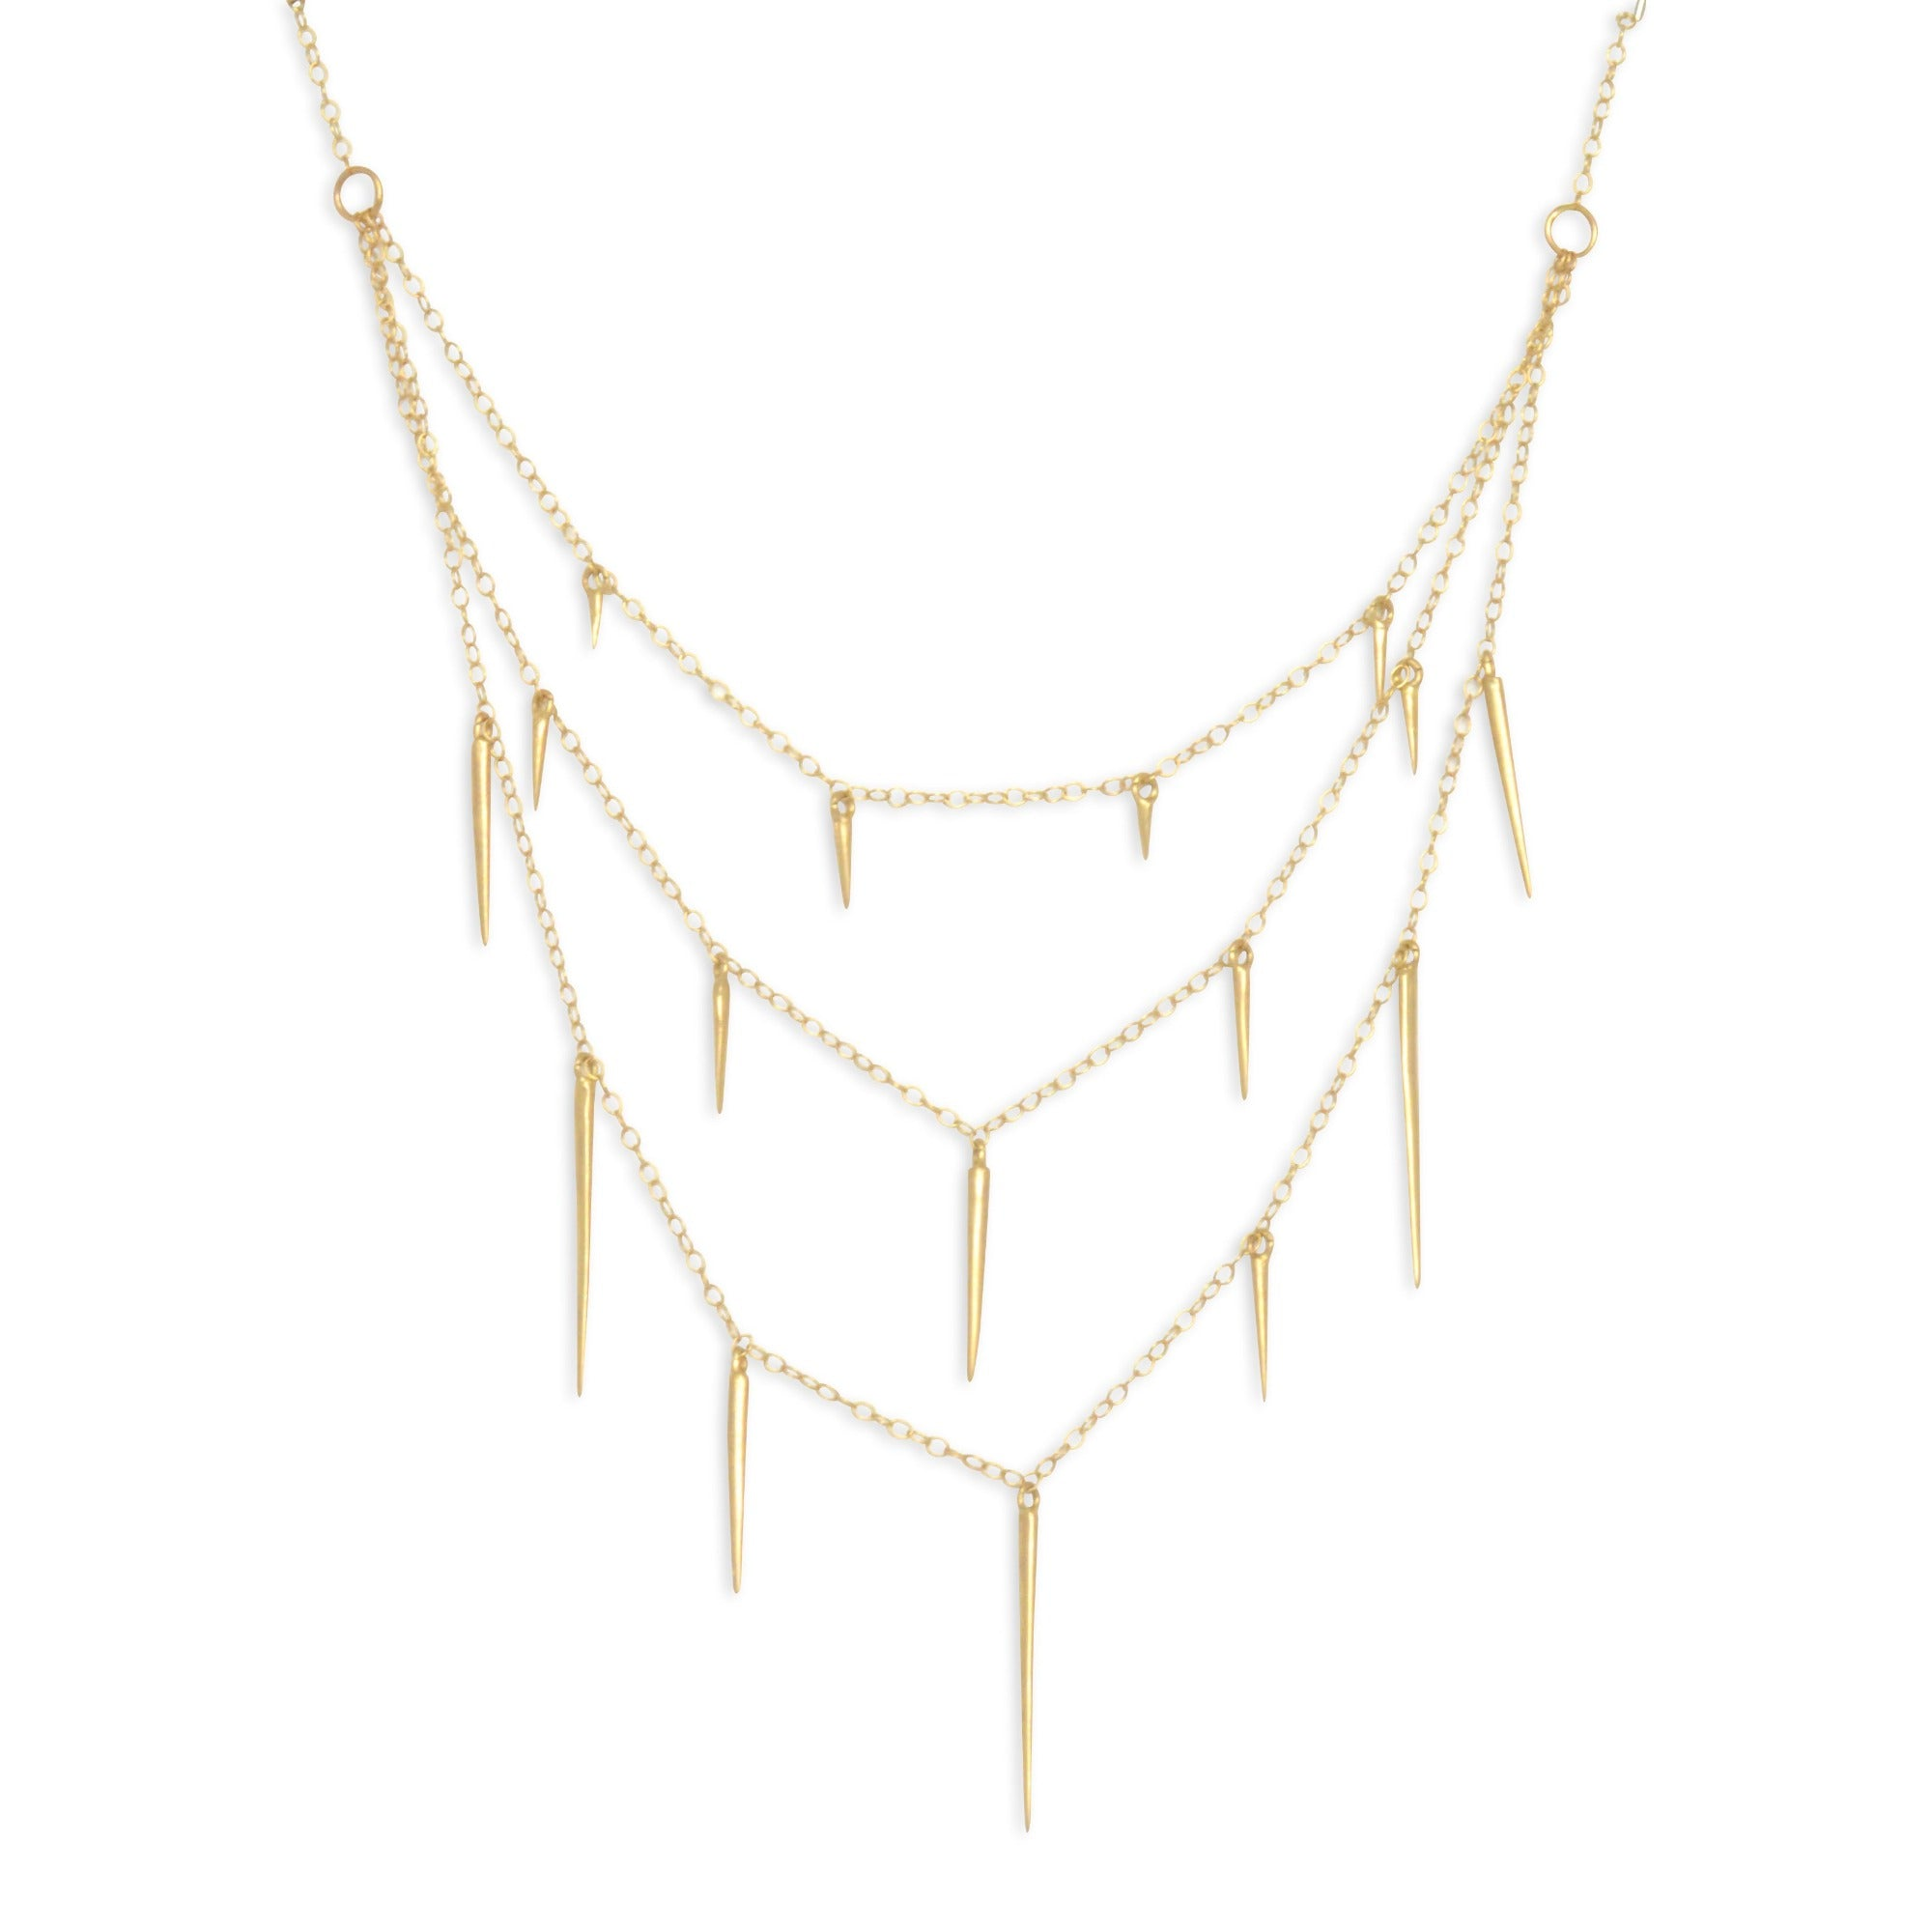 14k yellow gold small point three tier necklace